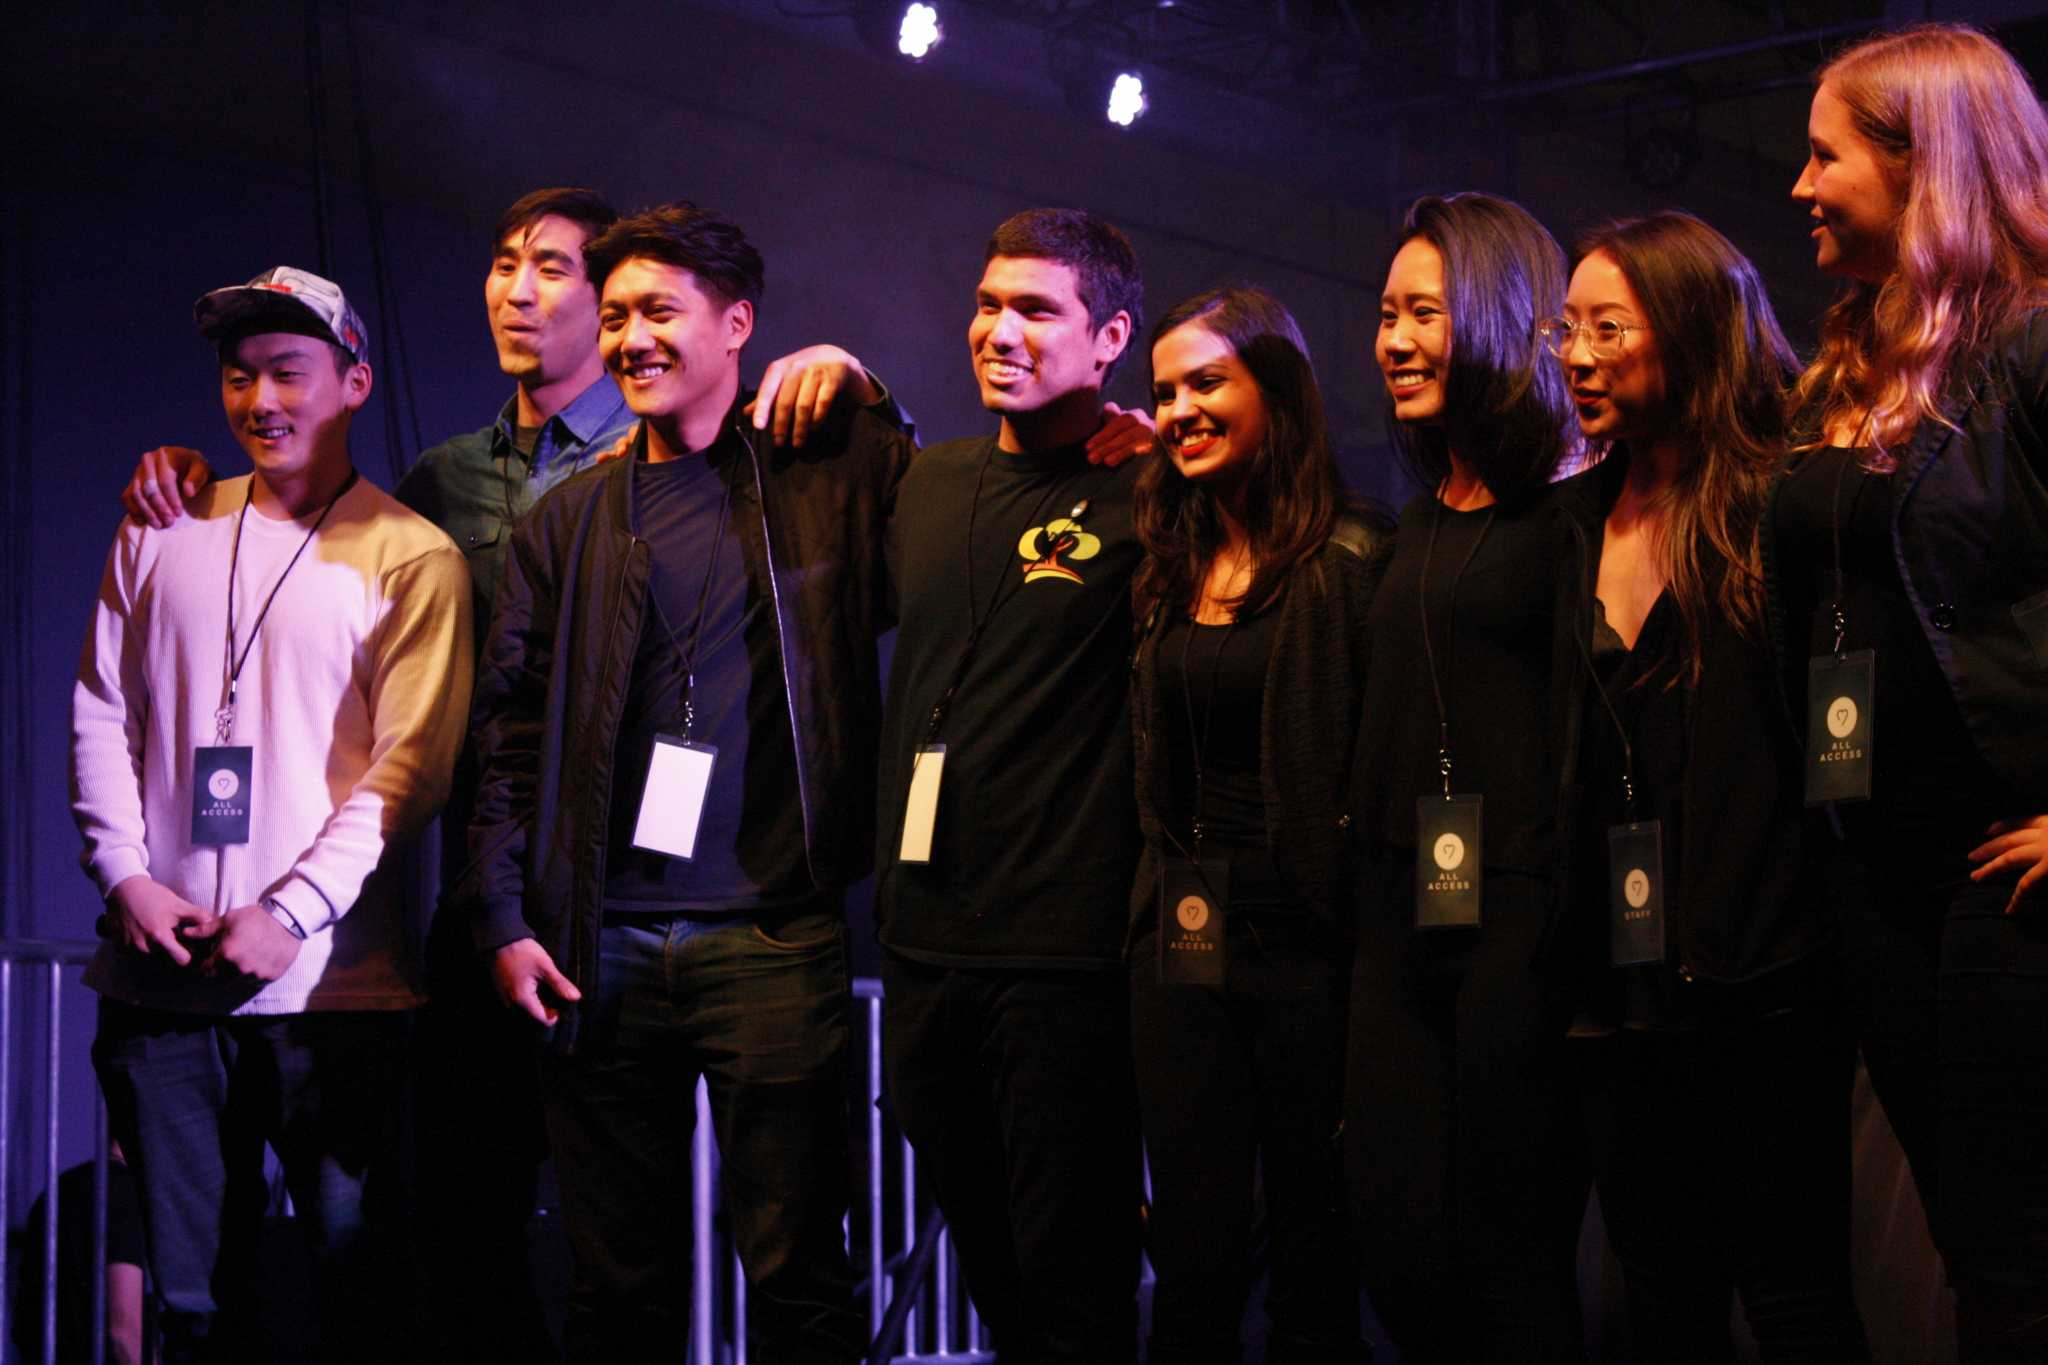 Jason Adauto (middle), who founded HeartBeats, poses with fellow members of Alpha Kappa Psi before introducing Giraffage at HeartBeats on March 3, 2017 (Nicole Ortega/Xpress).